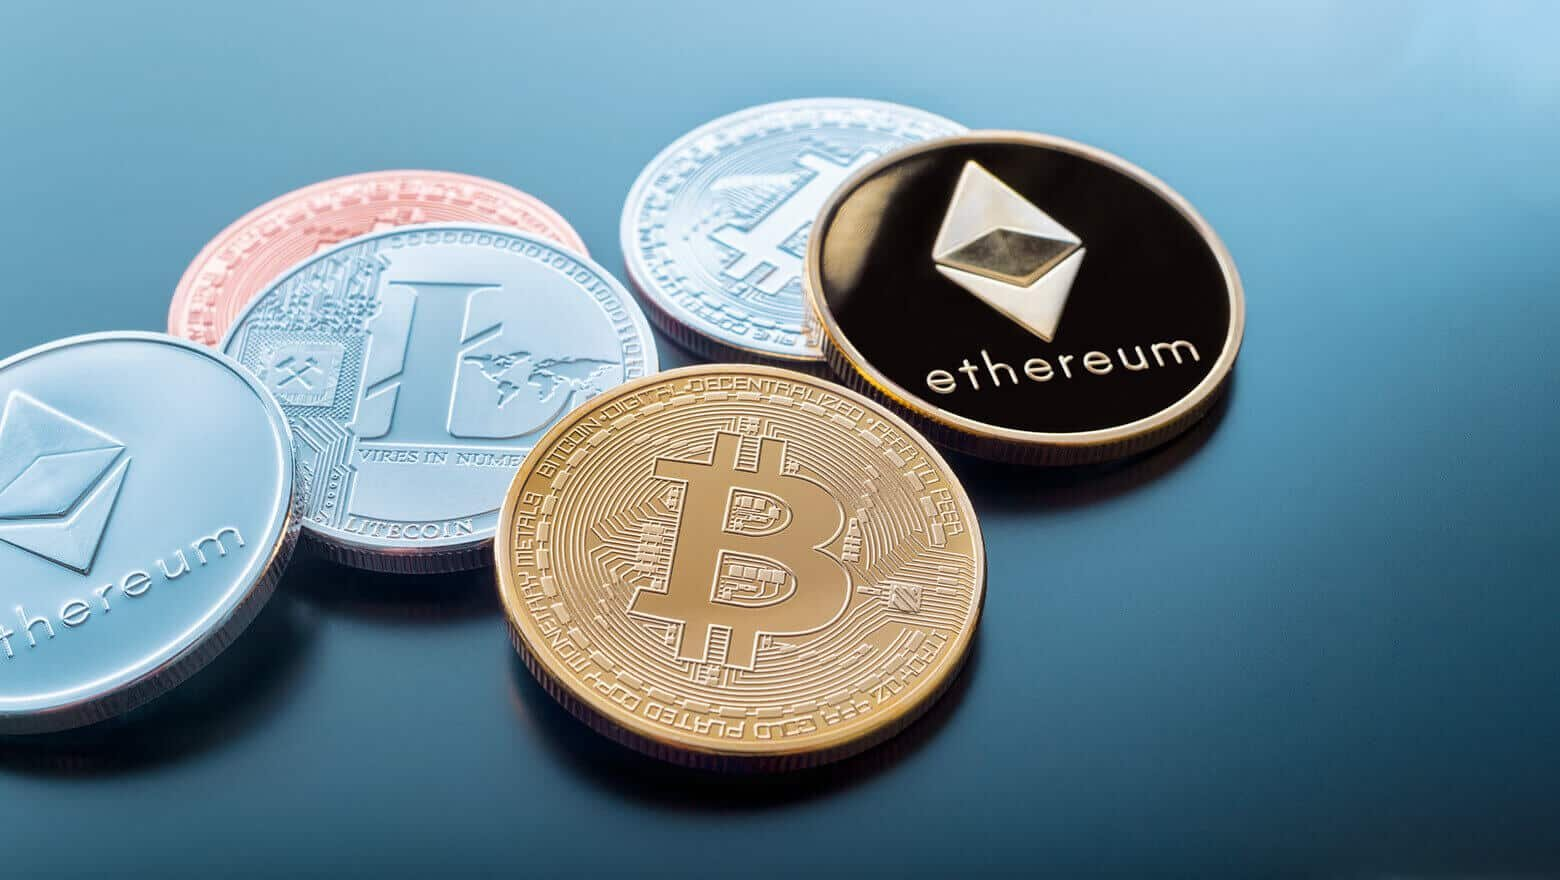 Top 5 Cryptocurrencies To Buy This Weekend for High Returns